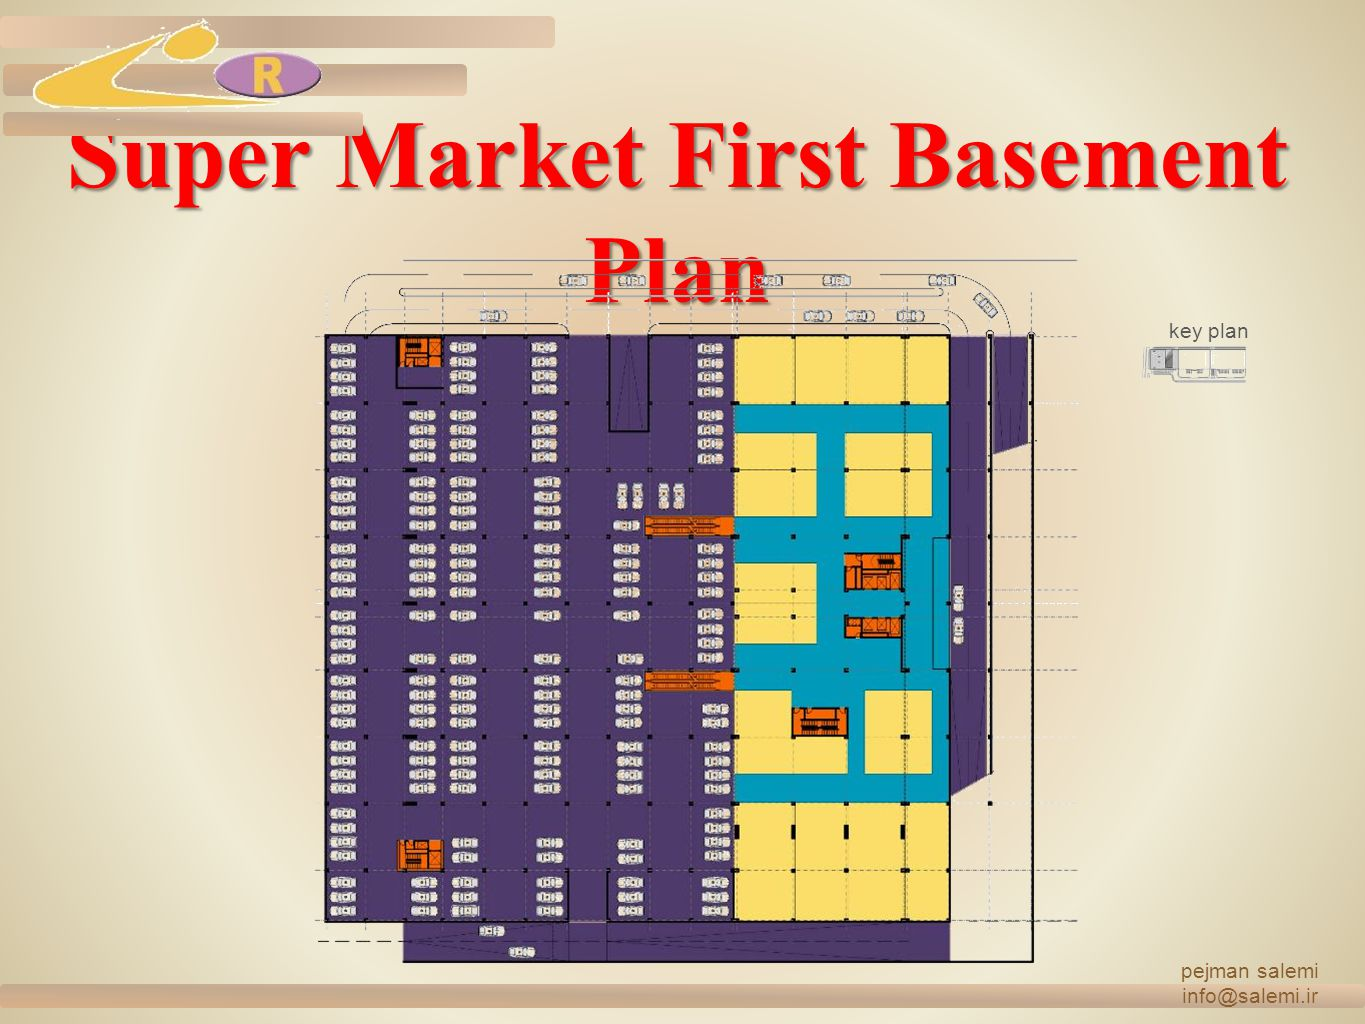 Super Market First Basement Plan